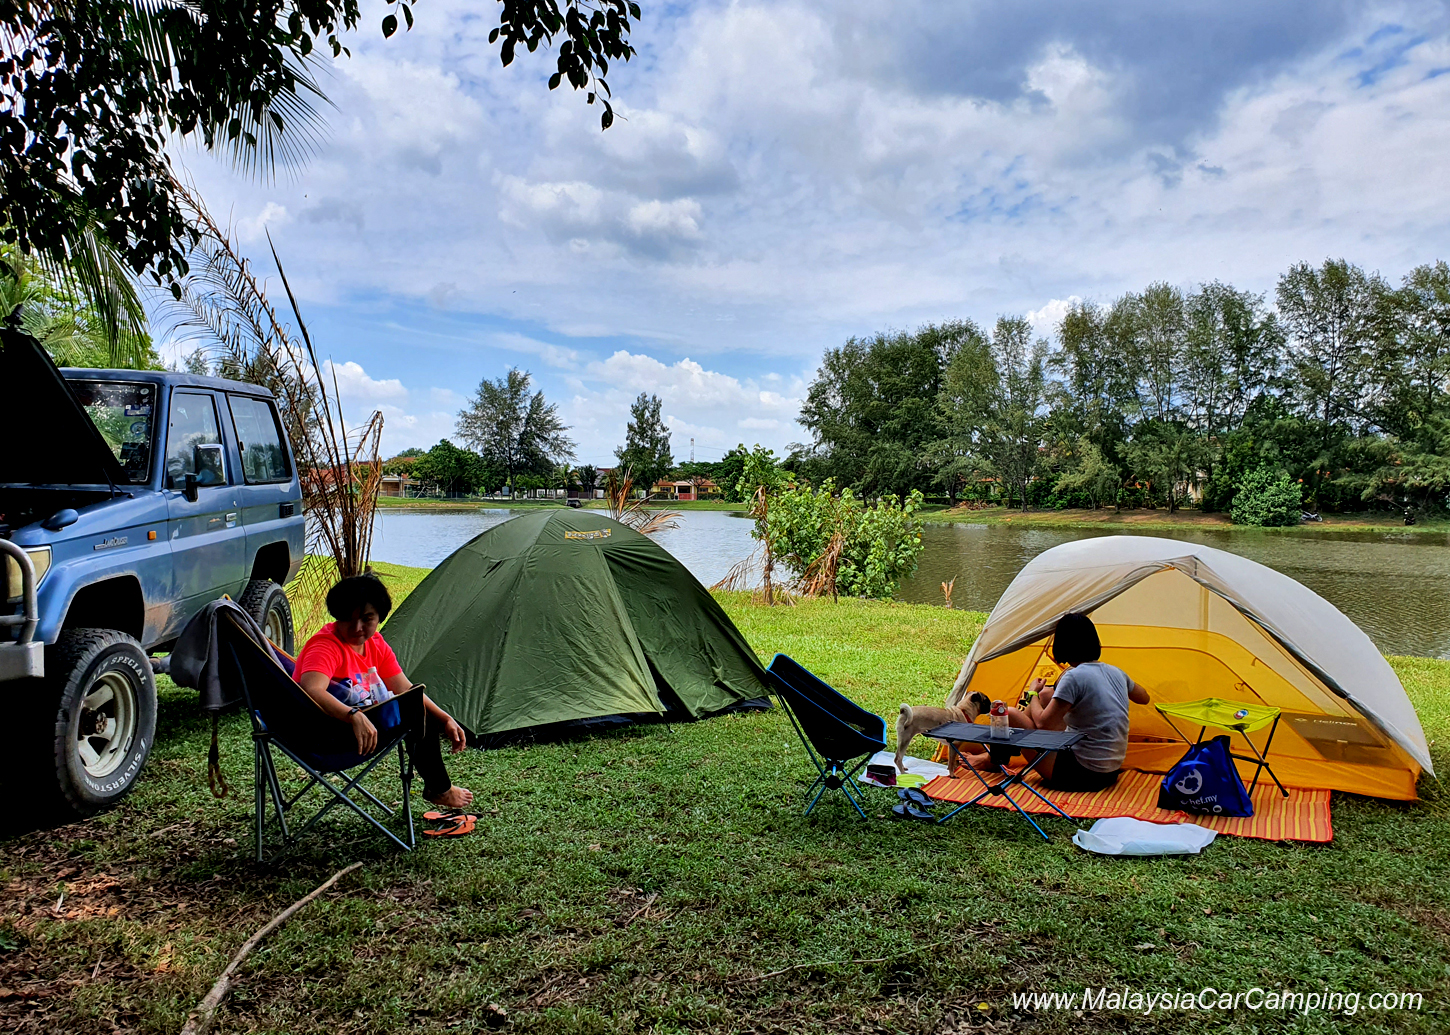 camping_with_dogs_puppy_lakeside_camping_malaysia_car_camping_malaysia_campsite-9